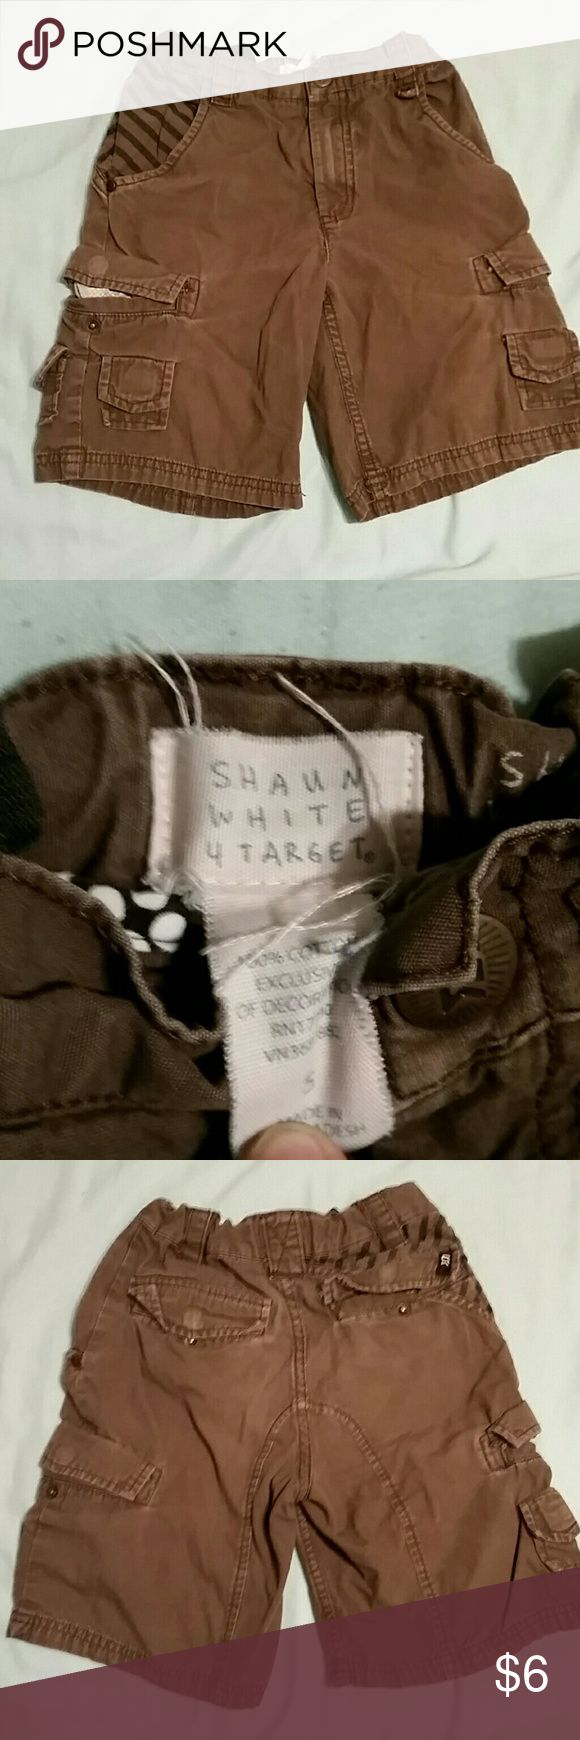 Shaun White little boys cargo shorts EUC brown cargo shorts no holes or stains some fading from wear around back pockets but still in amazing condition :) Shawn White 4 Target Bottoms Shorts